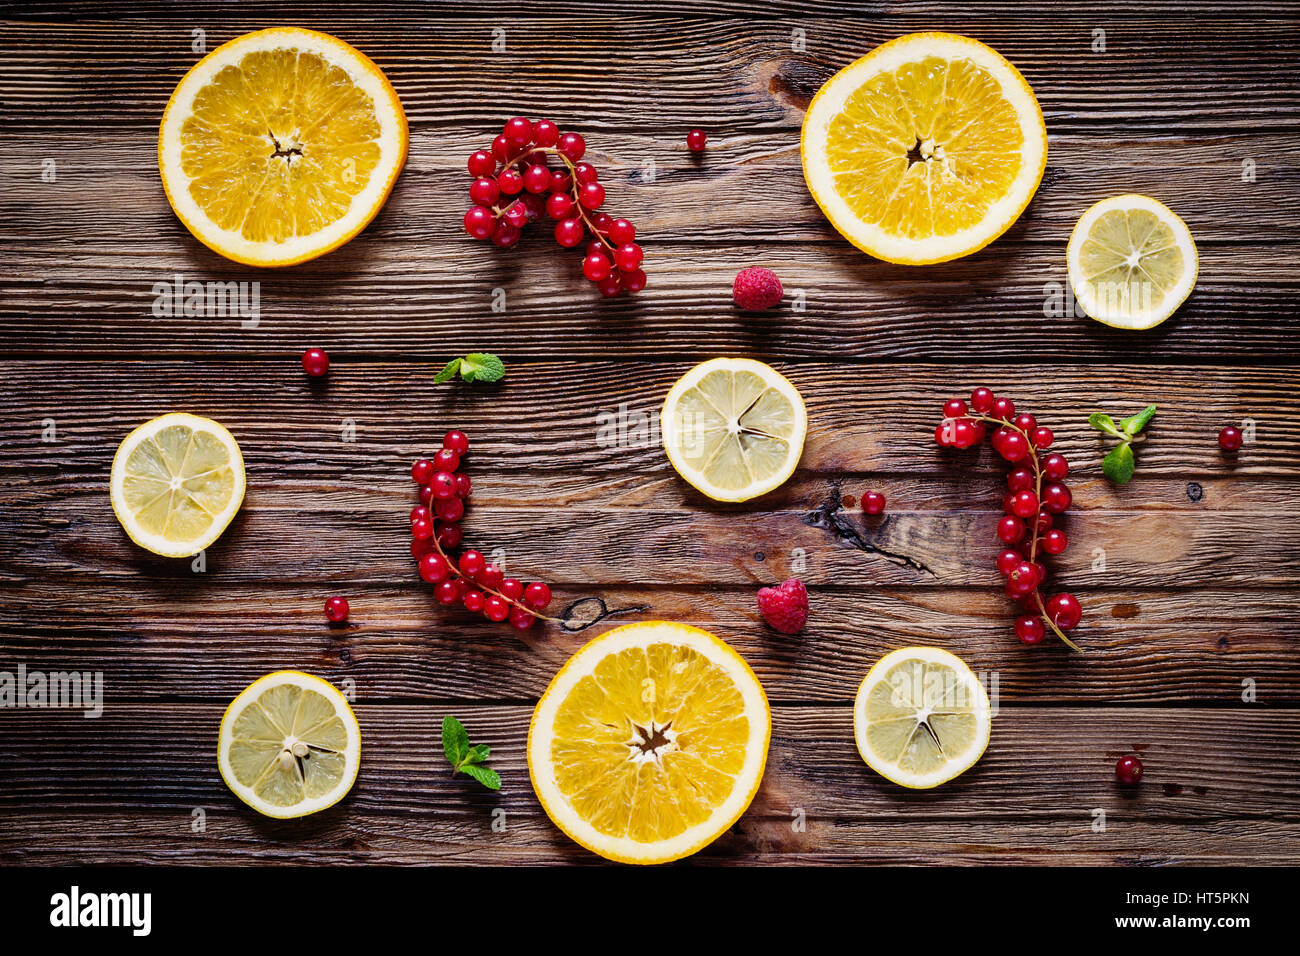 Lemon and orange rings, red currants, raspberries and mint leaves on wooden background. Table top view. Fresh fruit Stock Photo